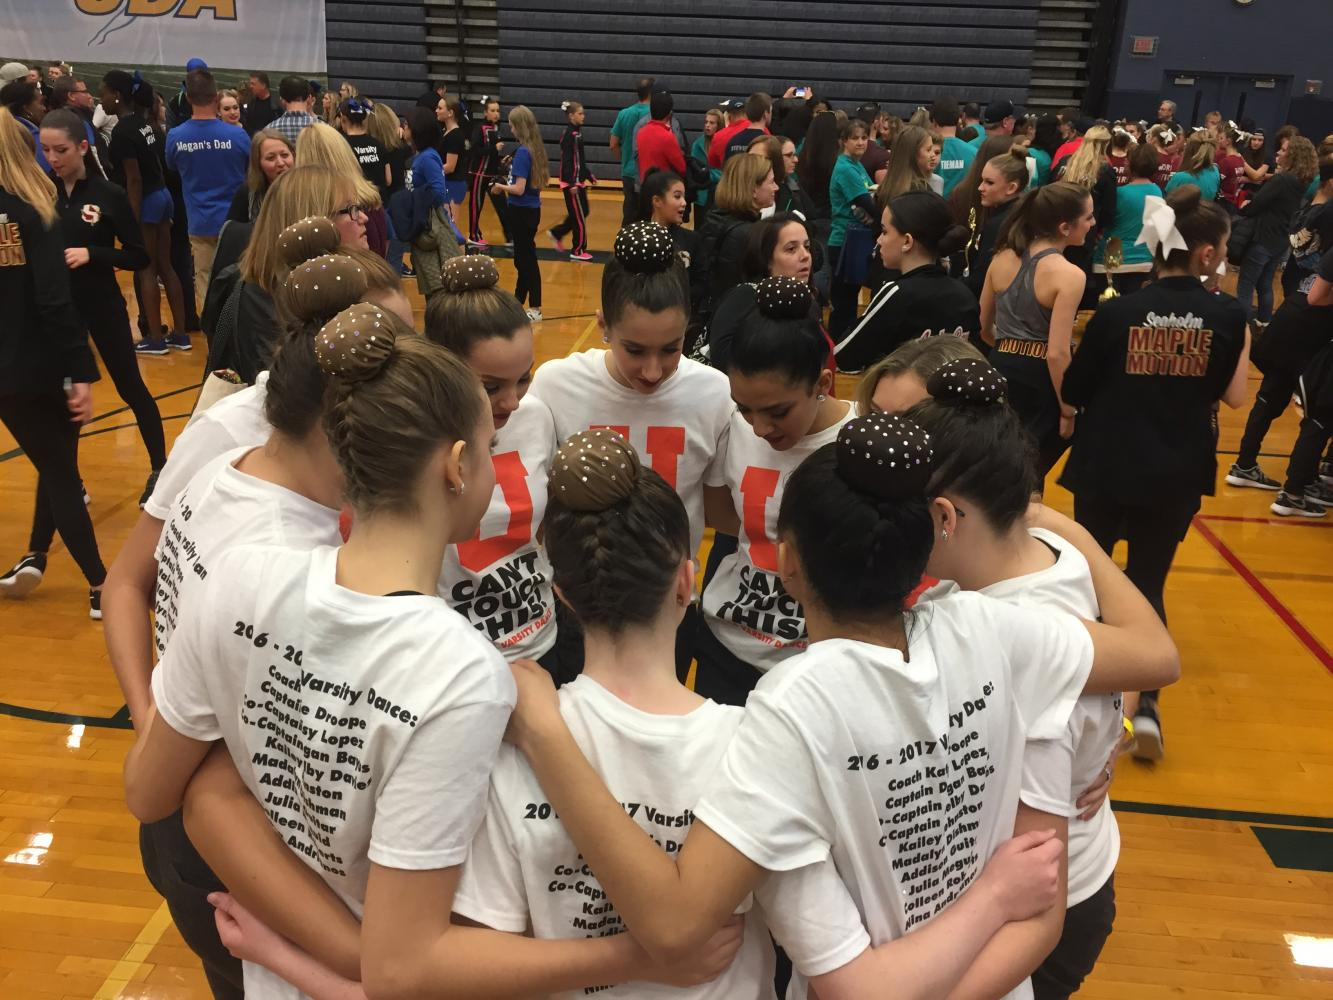 The dance team prepares for a competition